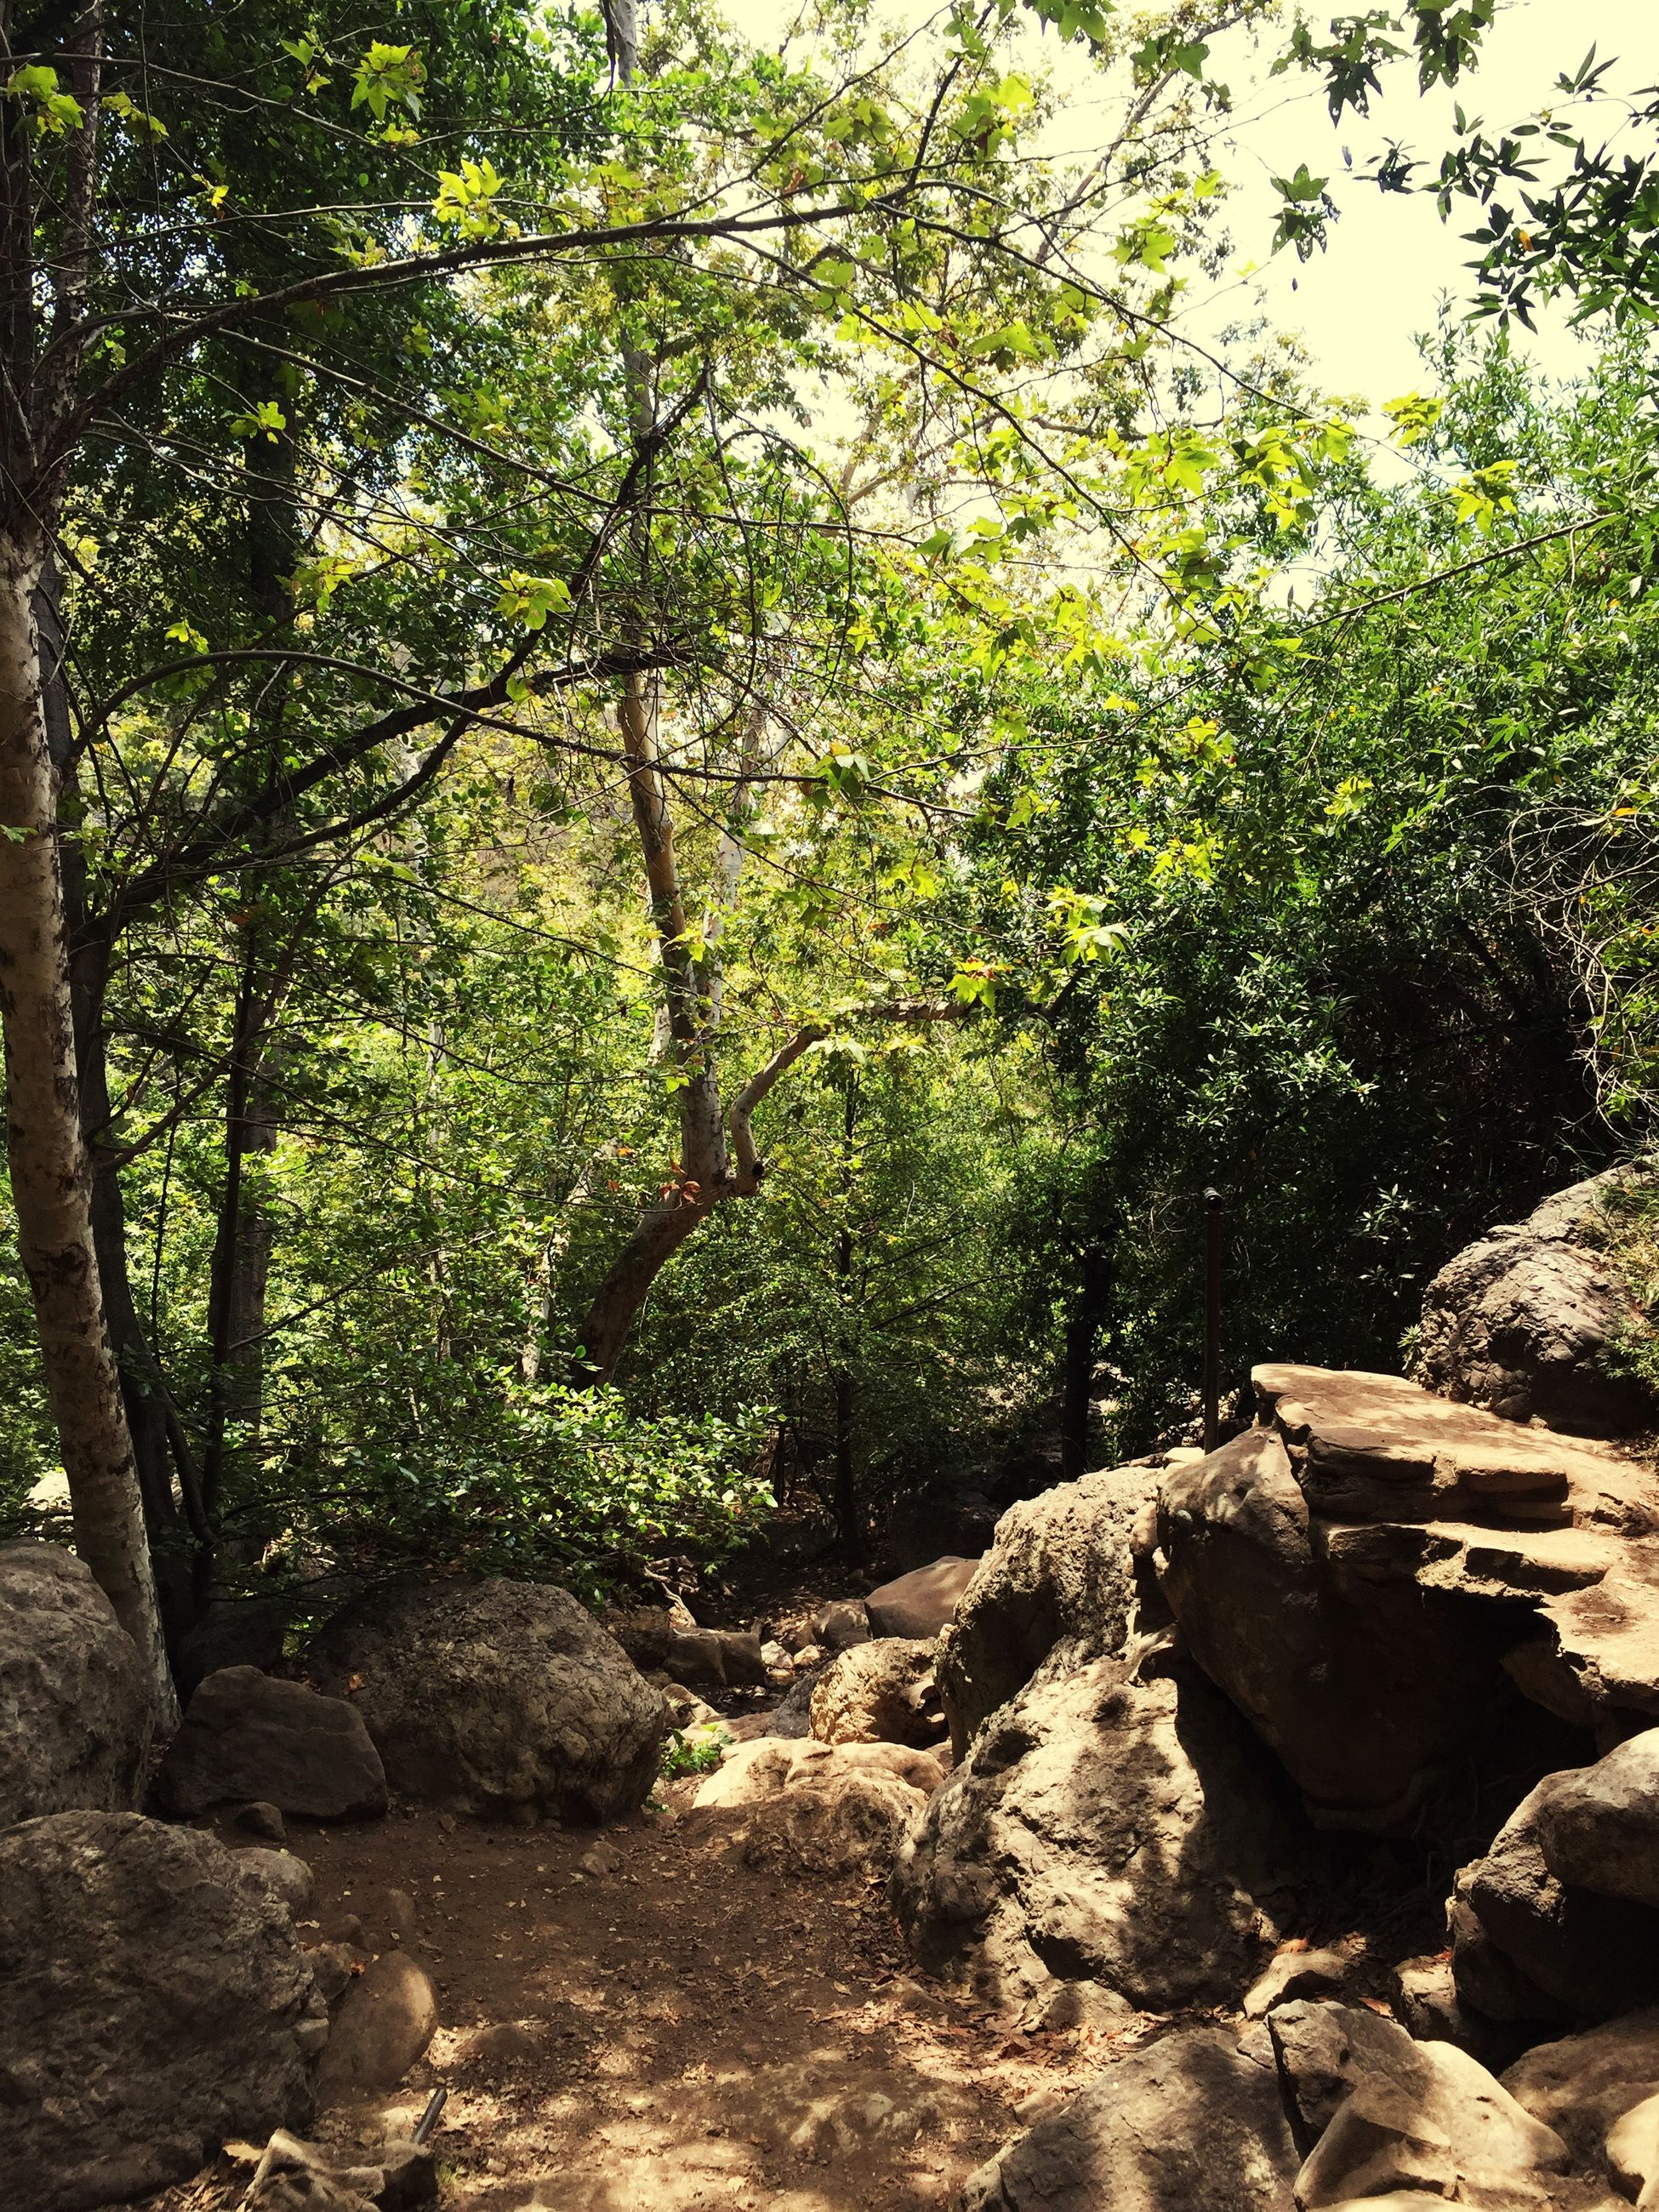 tree, tranquility, forest, nature, tranquil scene, growth, rock - object, beauty in nature, scenics, green color, non-urban scene, tree trunk, landscape, day, branch, outdoors, non urban scene, sunlight, rock, no people